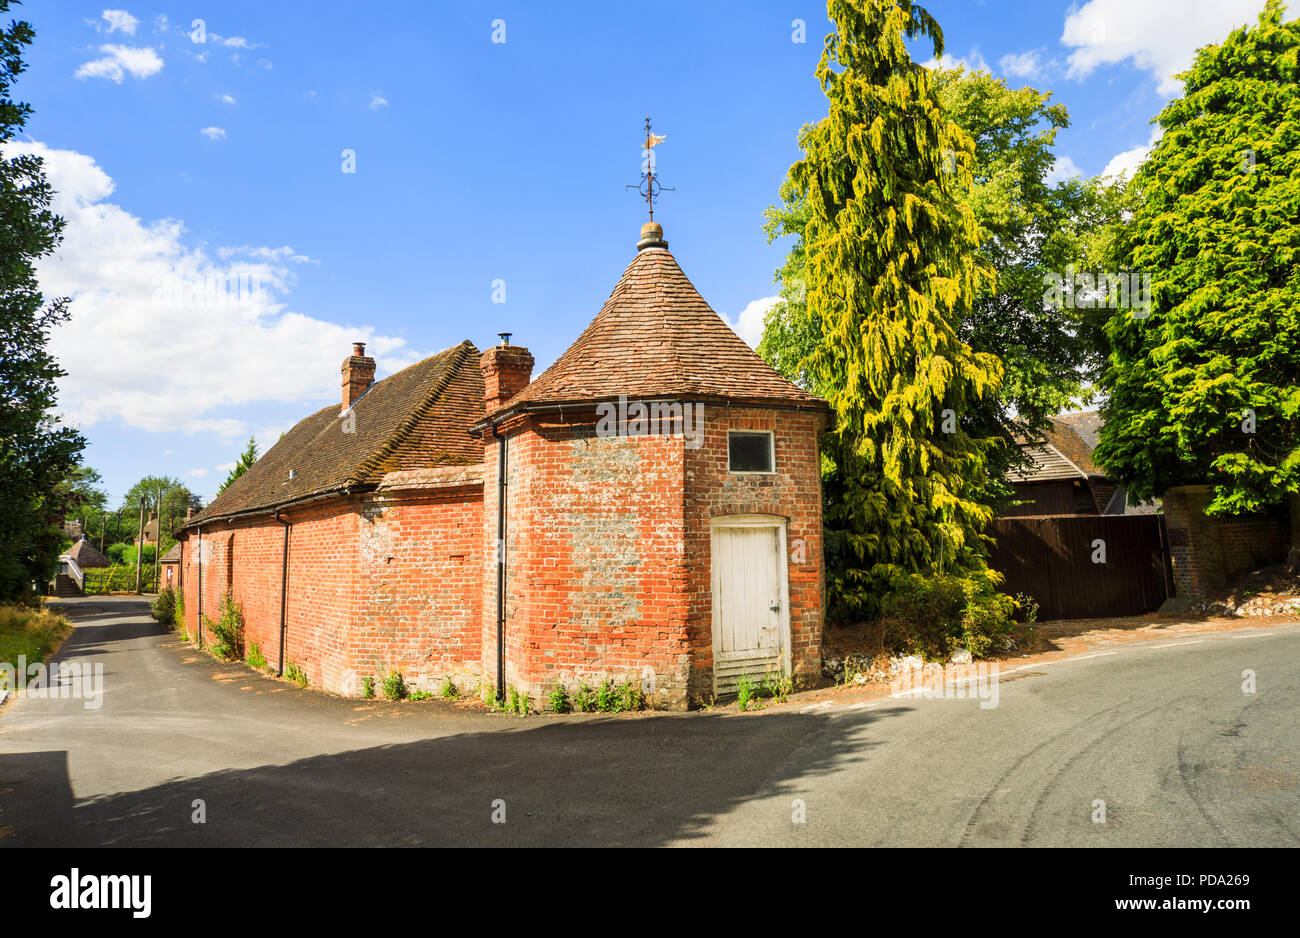 Old brick stables building in Little Bedwyn, a small rural village in Wiltshire, southern England in summer - Stock Image